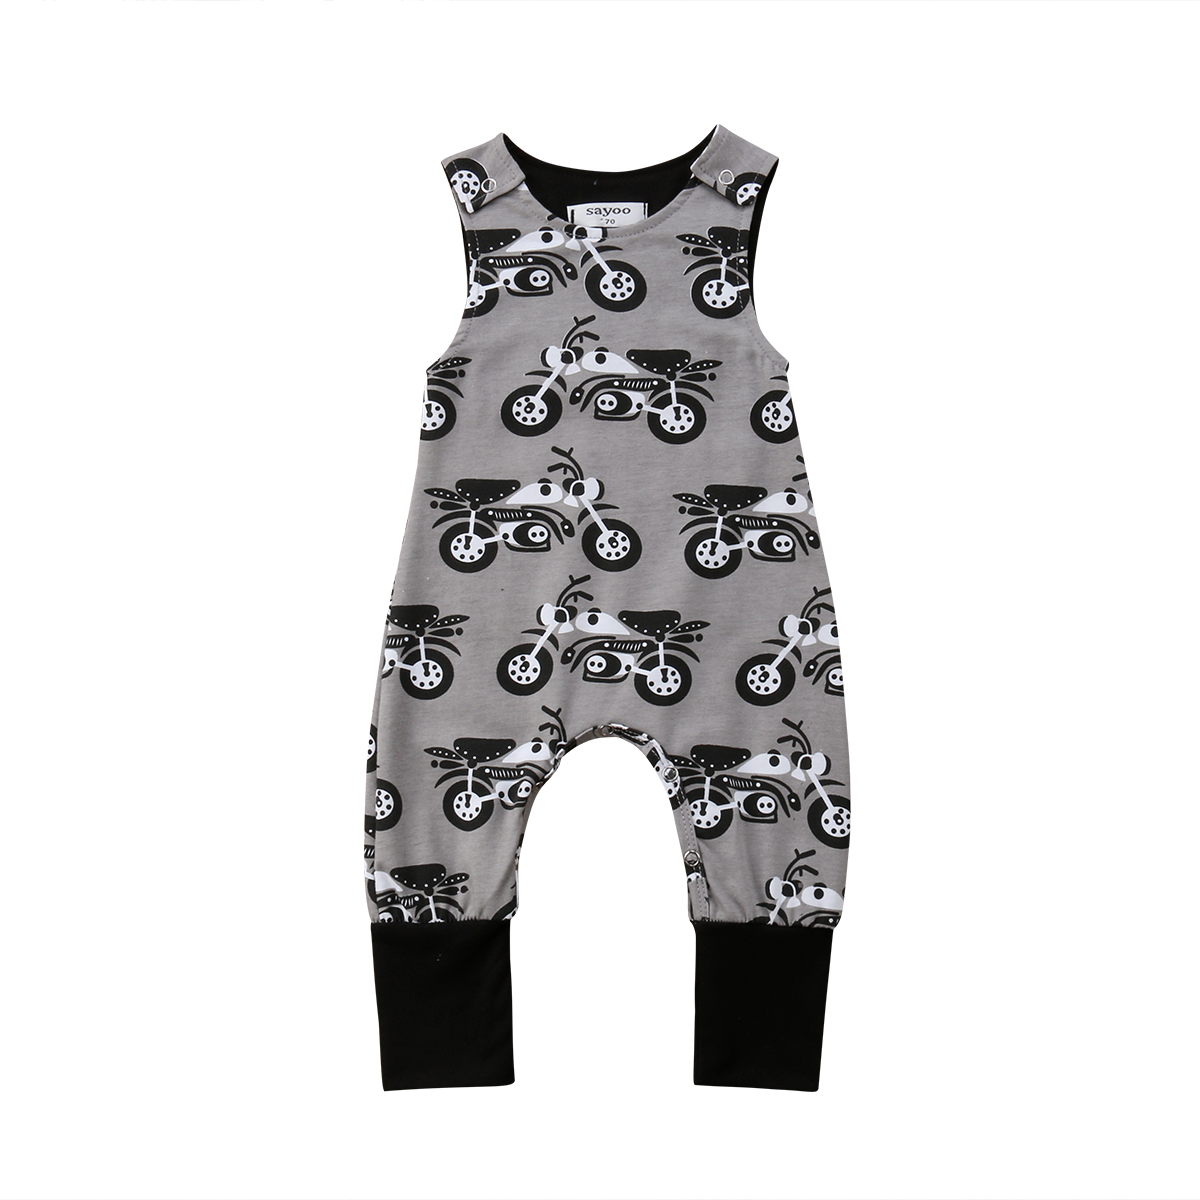 Mother & Kids Newborn Baby Boys Sleeveless Hooded Rompers Harem Pants Baby Jumpsuit Cotton Clothing